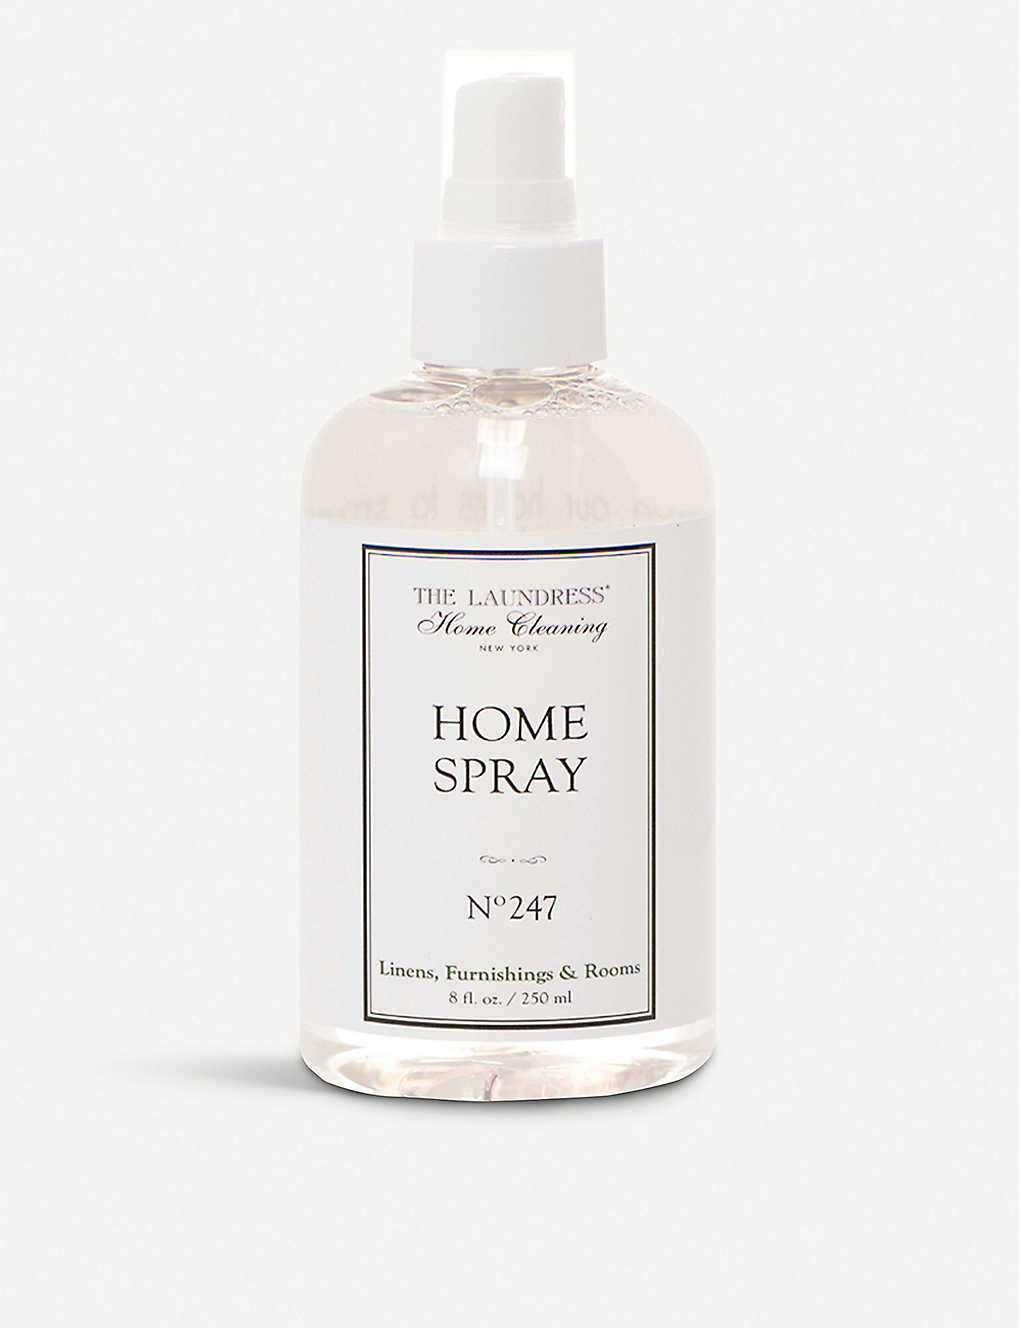 THE LAUNDRESS: Scented Home Spray 235ml